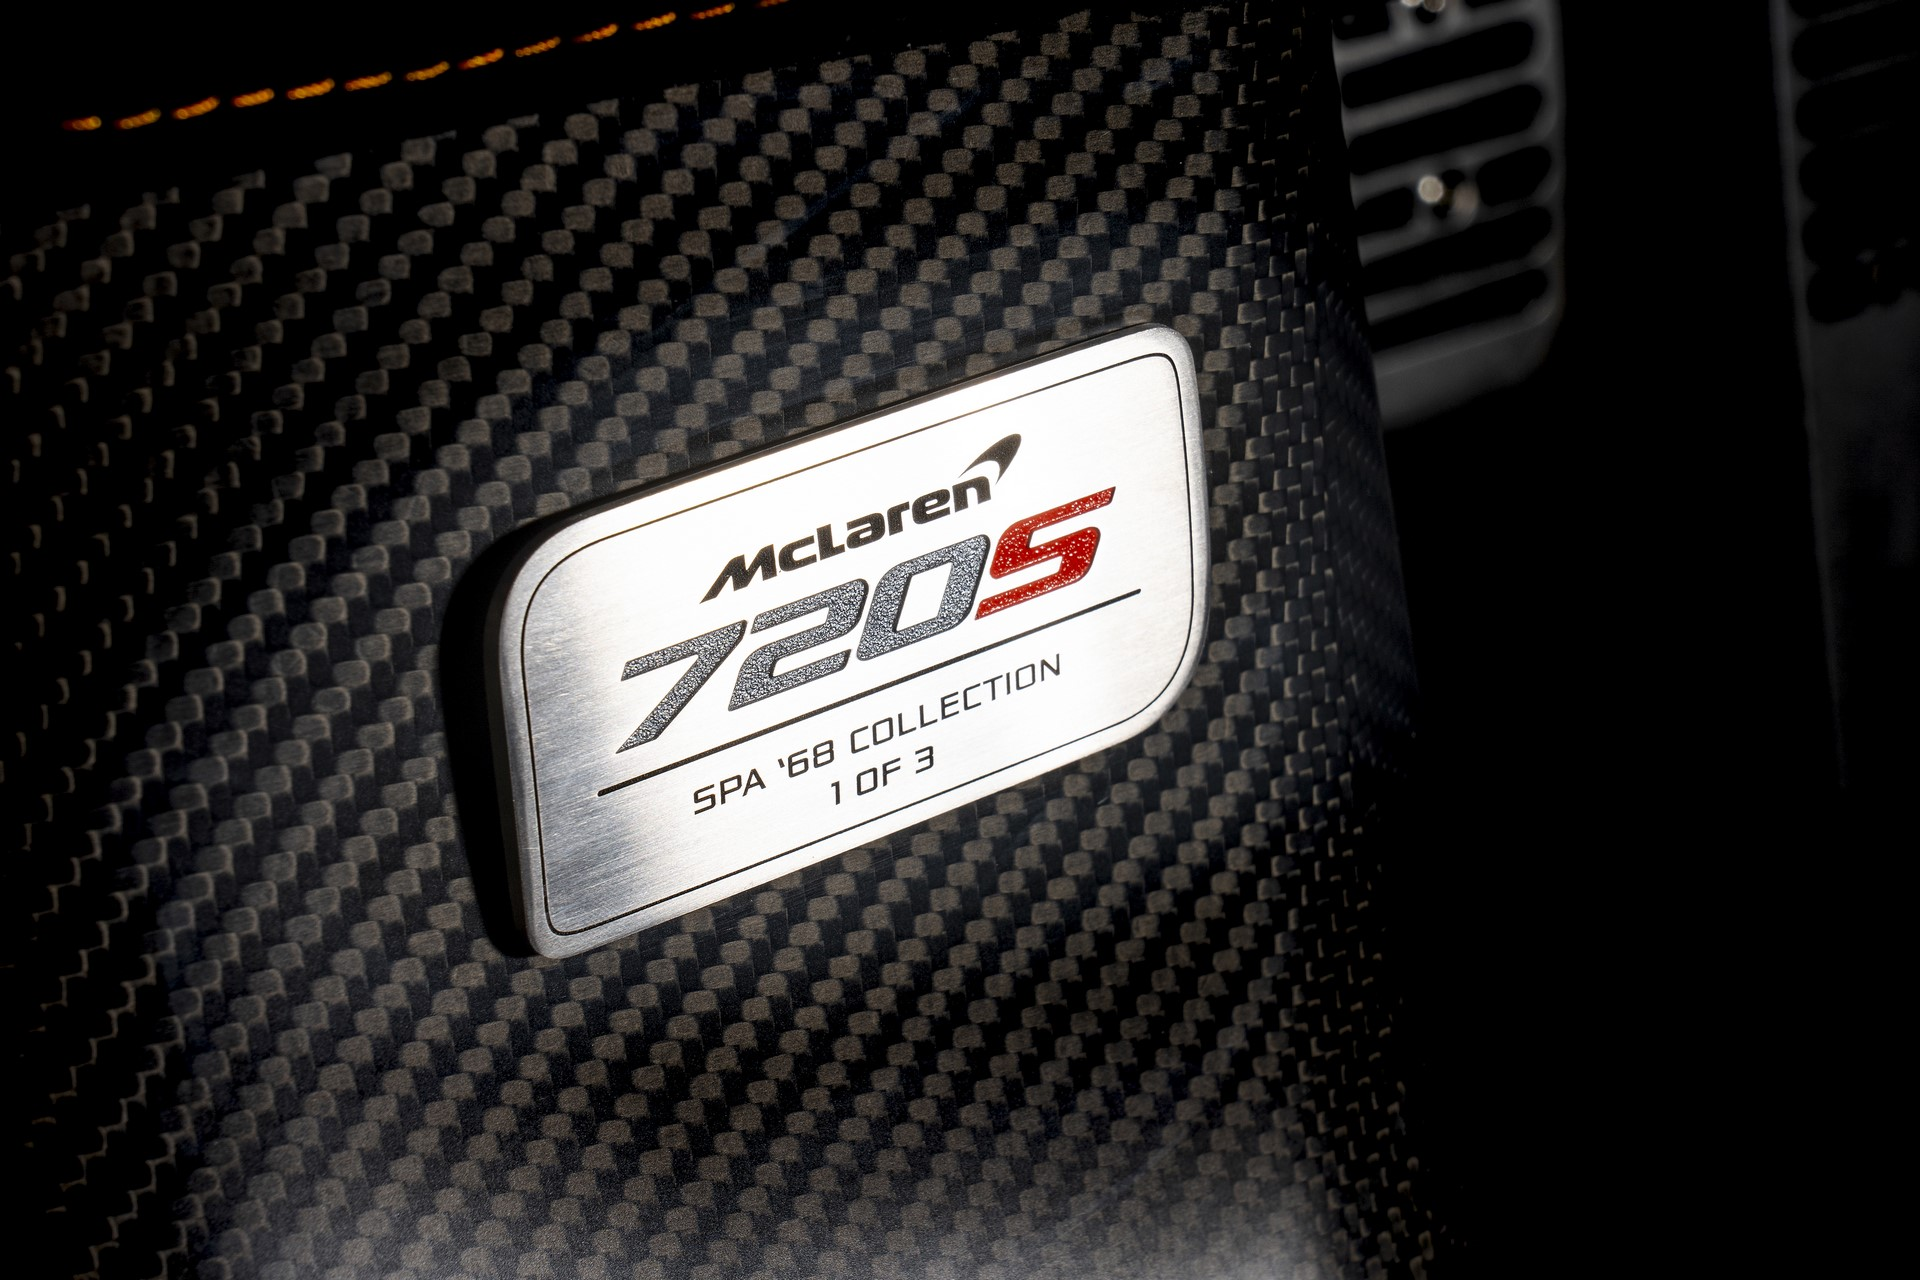 McLaren 720S Spa 68 Collection (8)